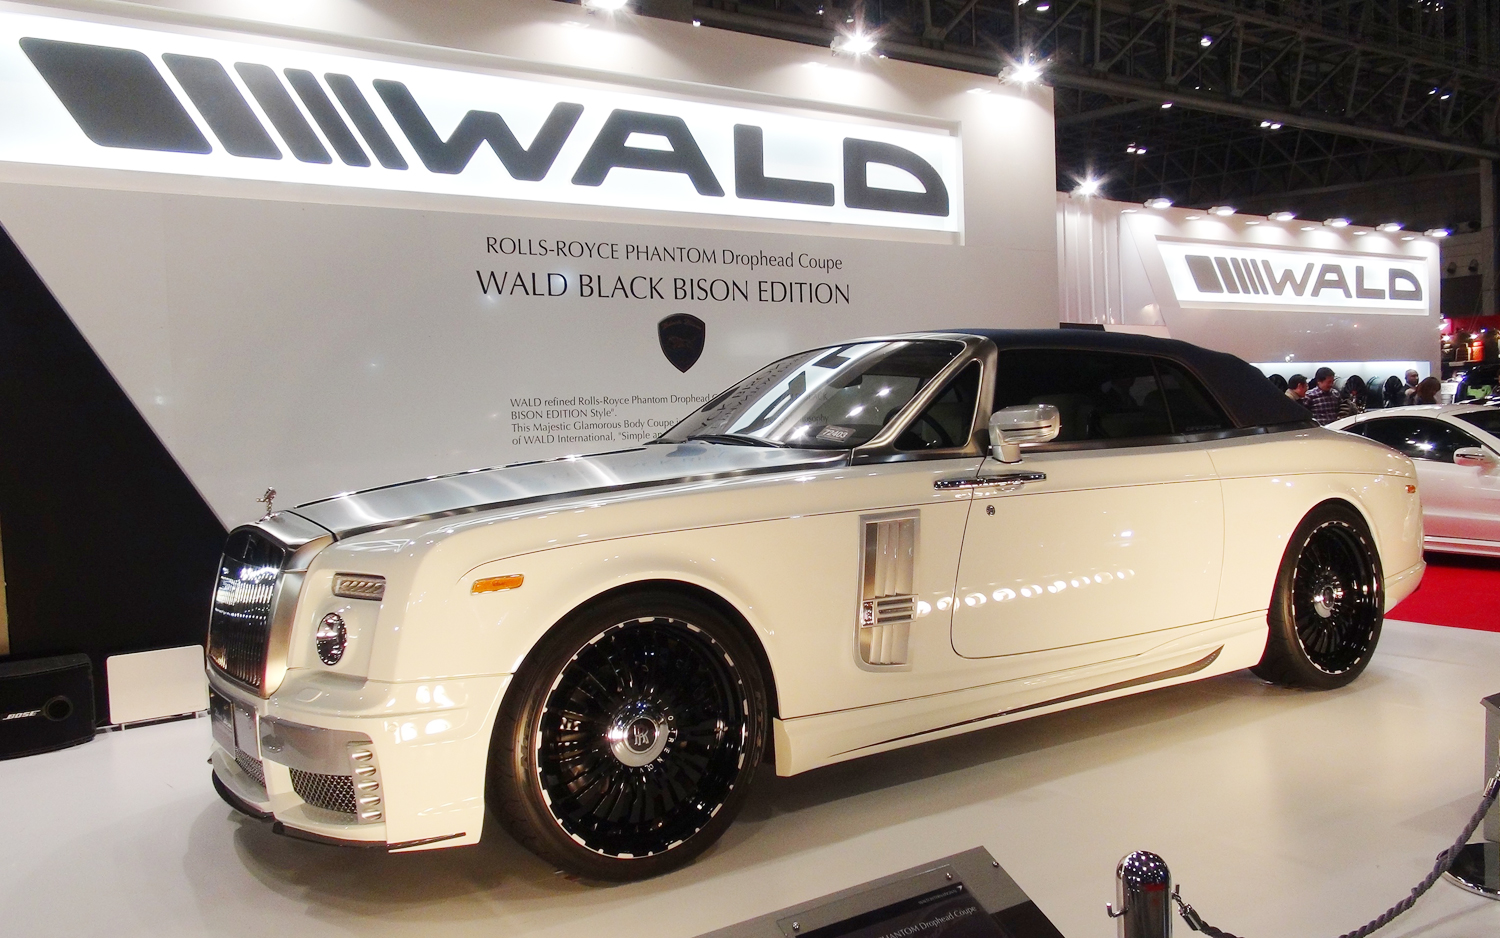 2014 Rolls royce Phantom Drophead Coupe #10